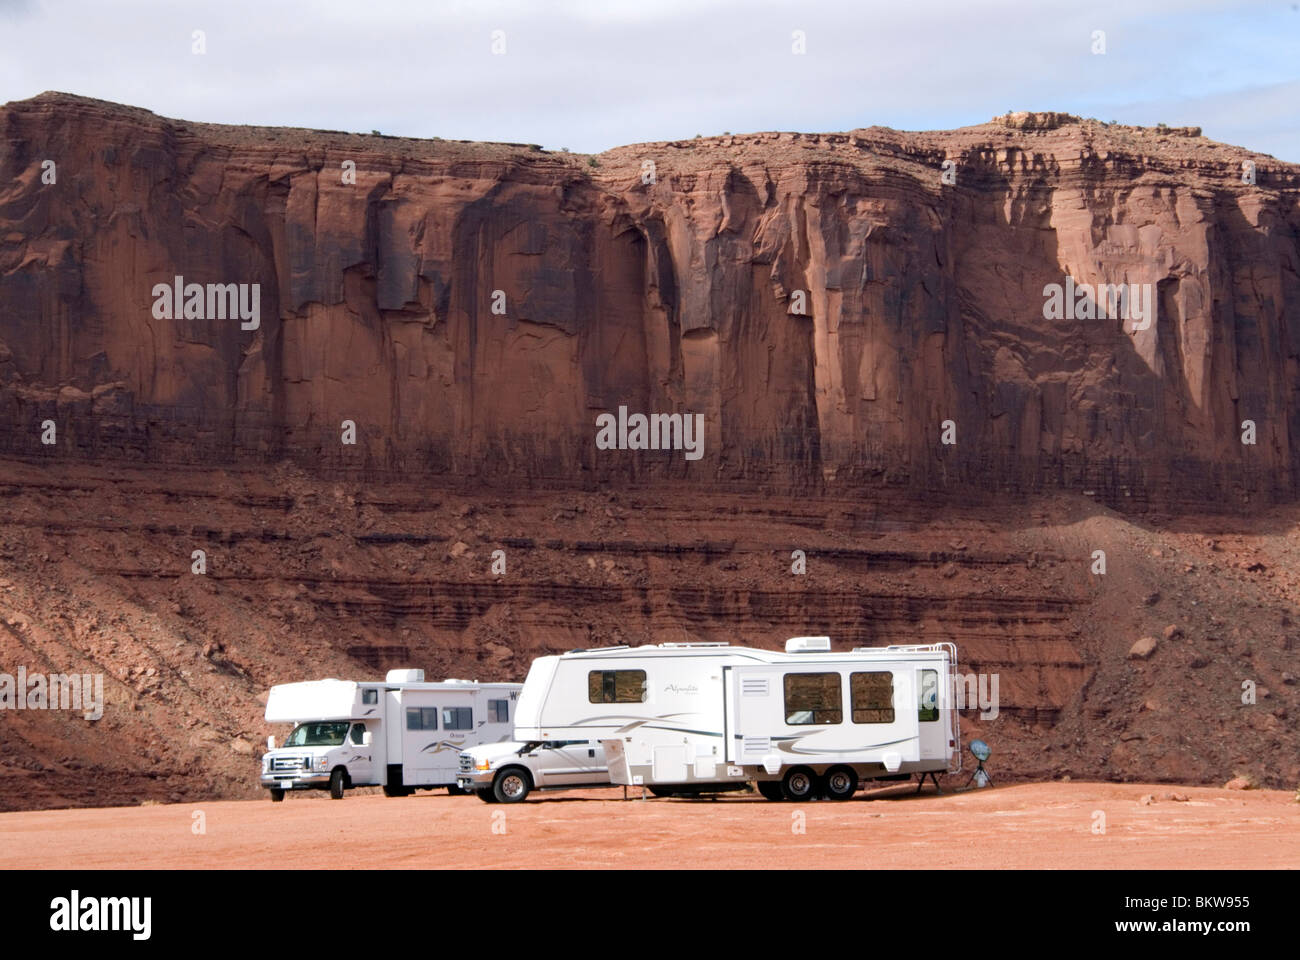 RVs recreational vehicles parked at the primitive campground at the Navajo Tribal Park Visitors Centre Monument - Stock Image